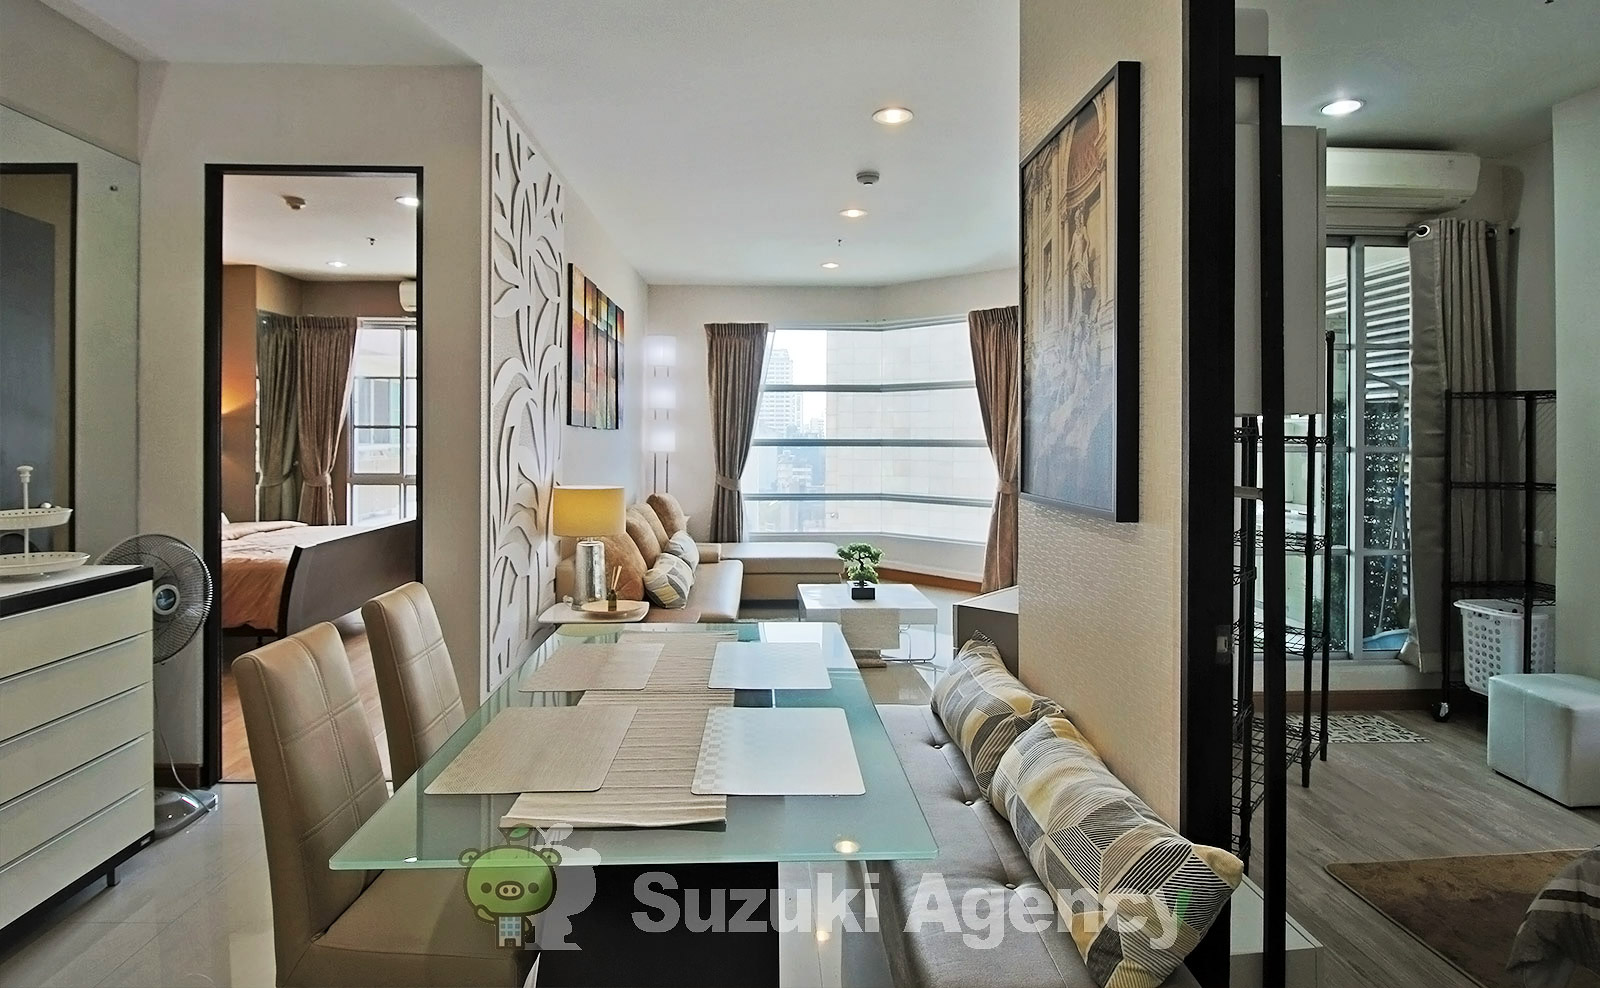 Citi Smart Condo:2Bed Room Photos No.1